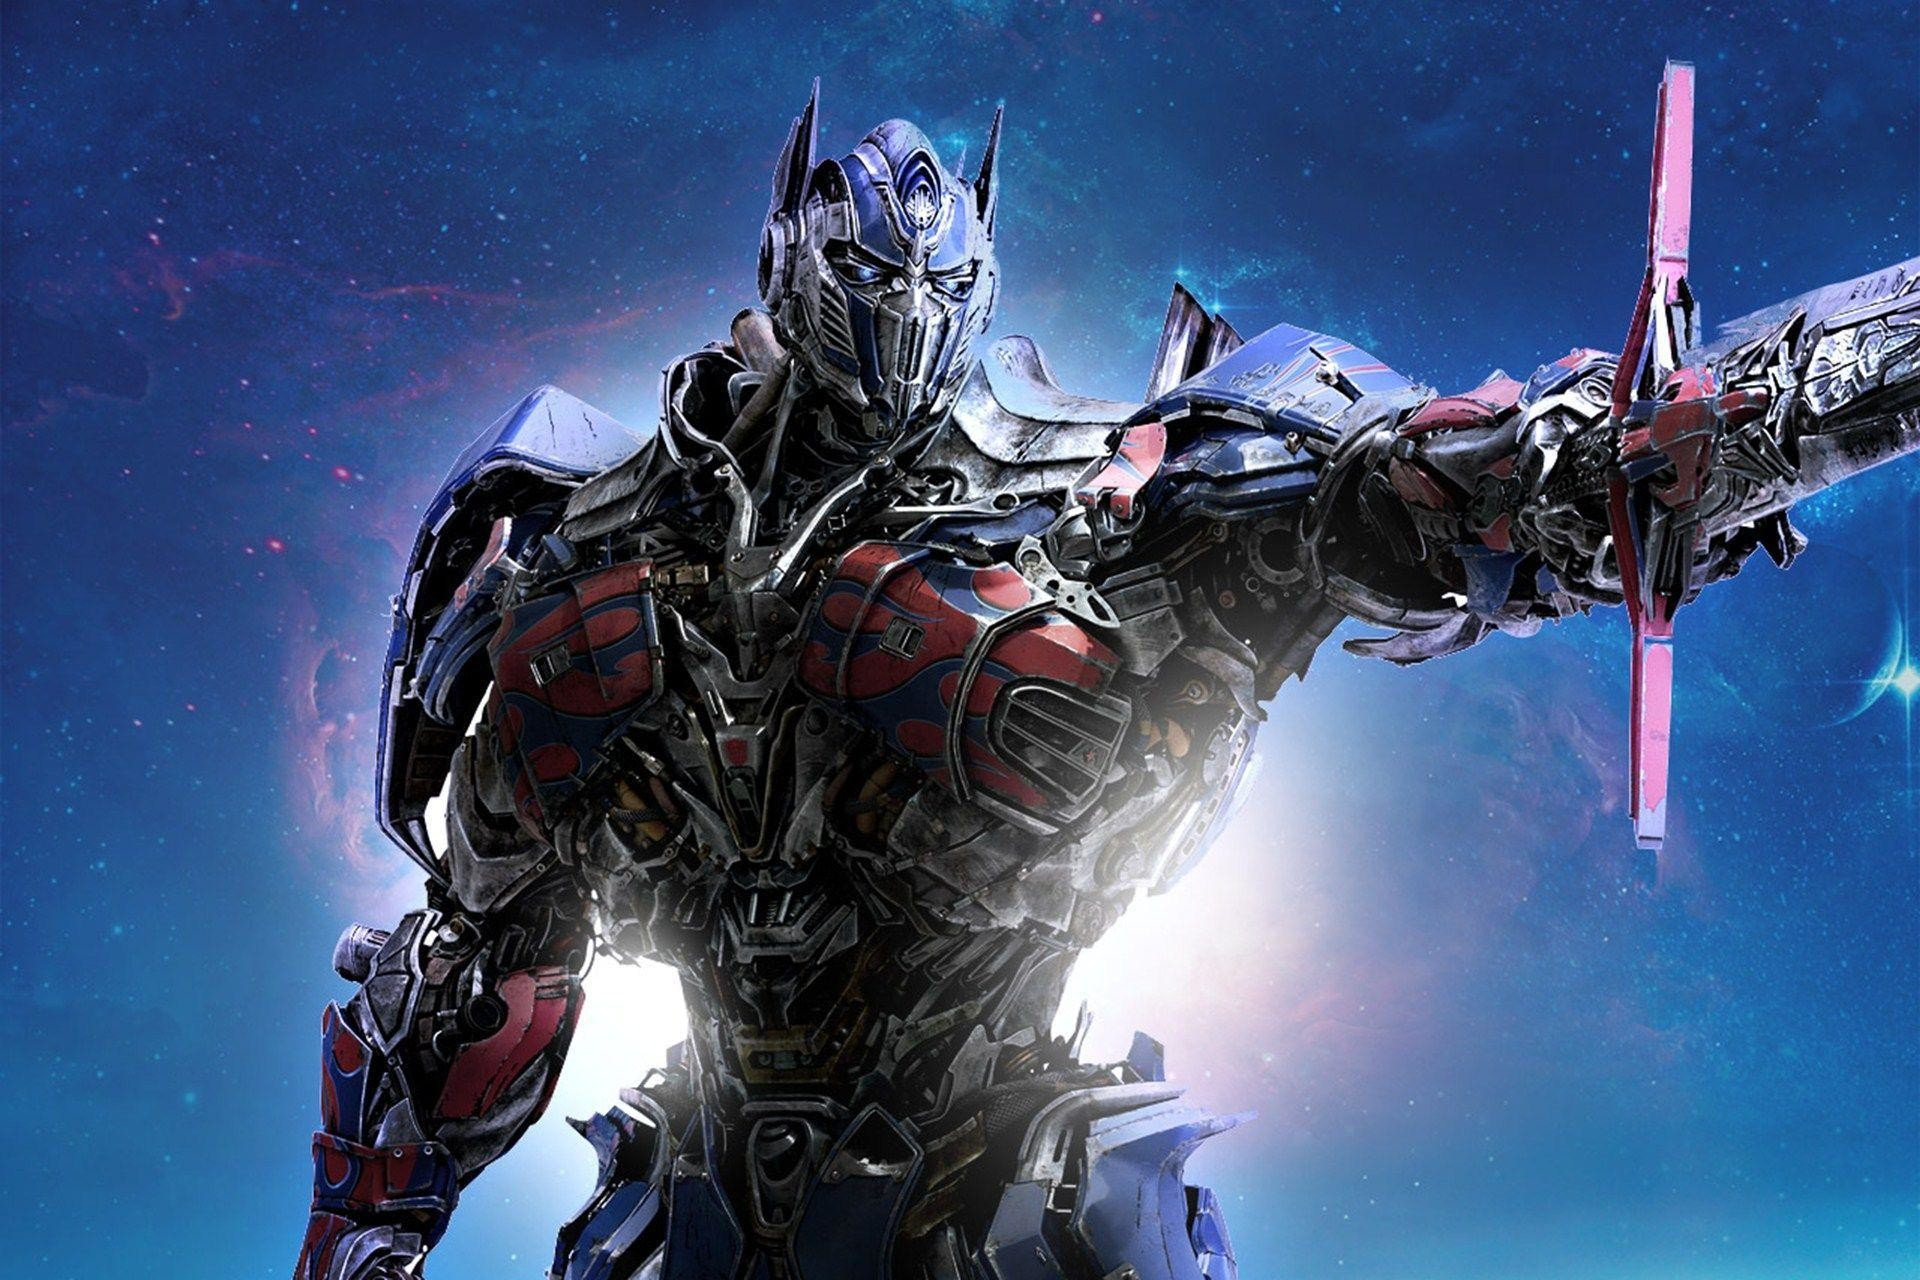 transformers 5 wallpapers 51 images